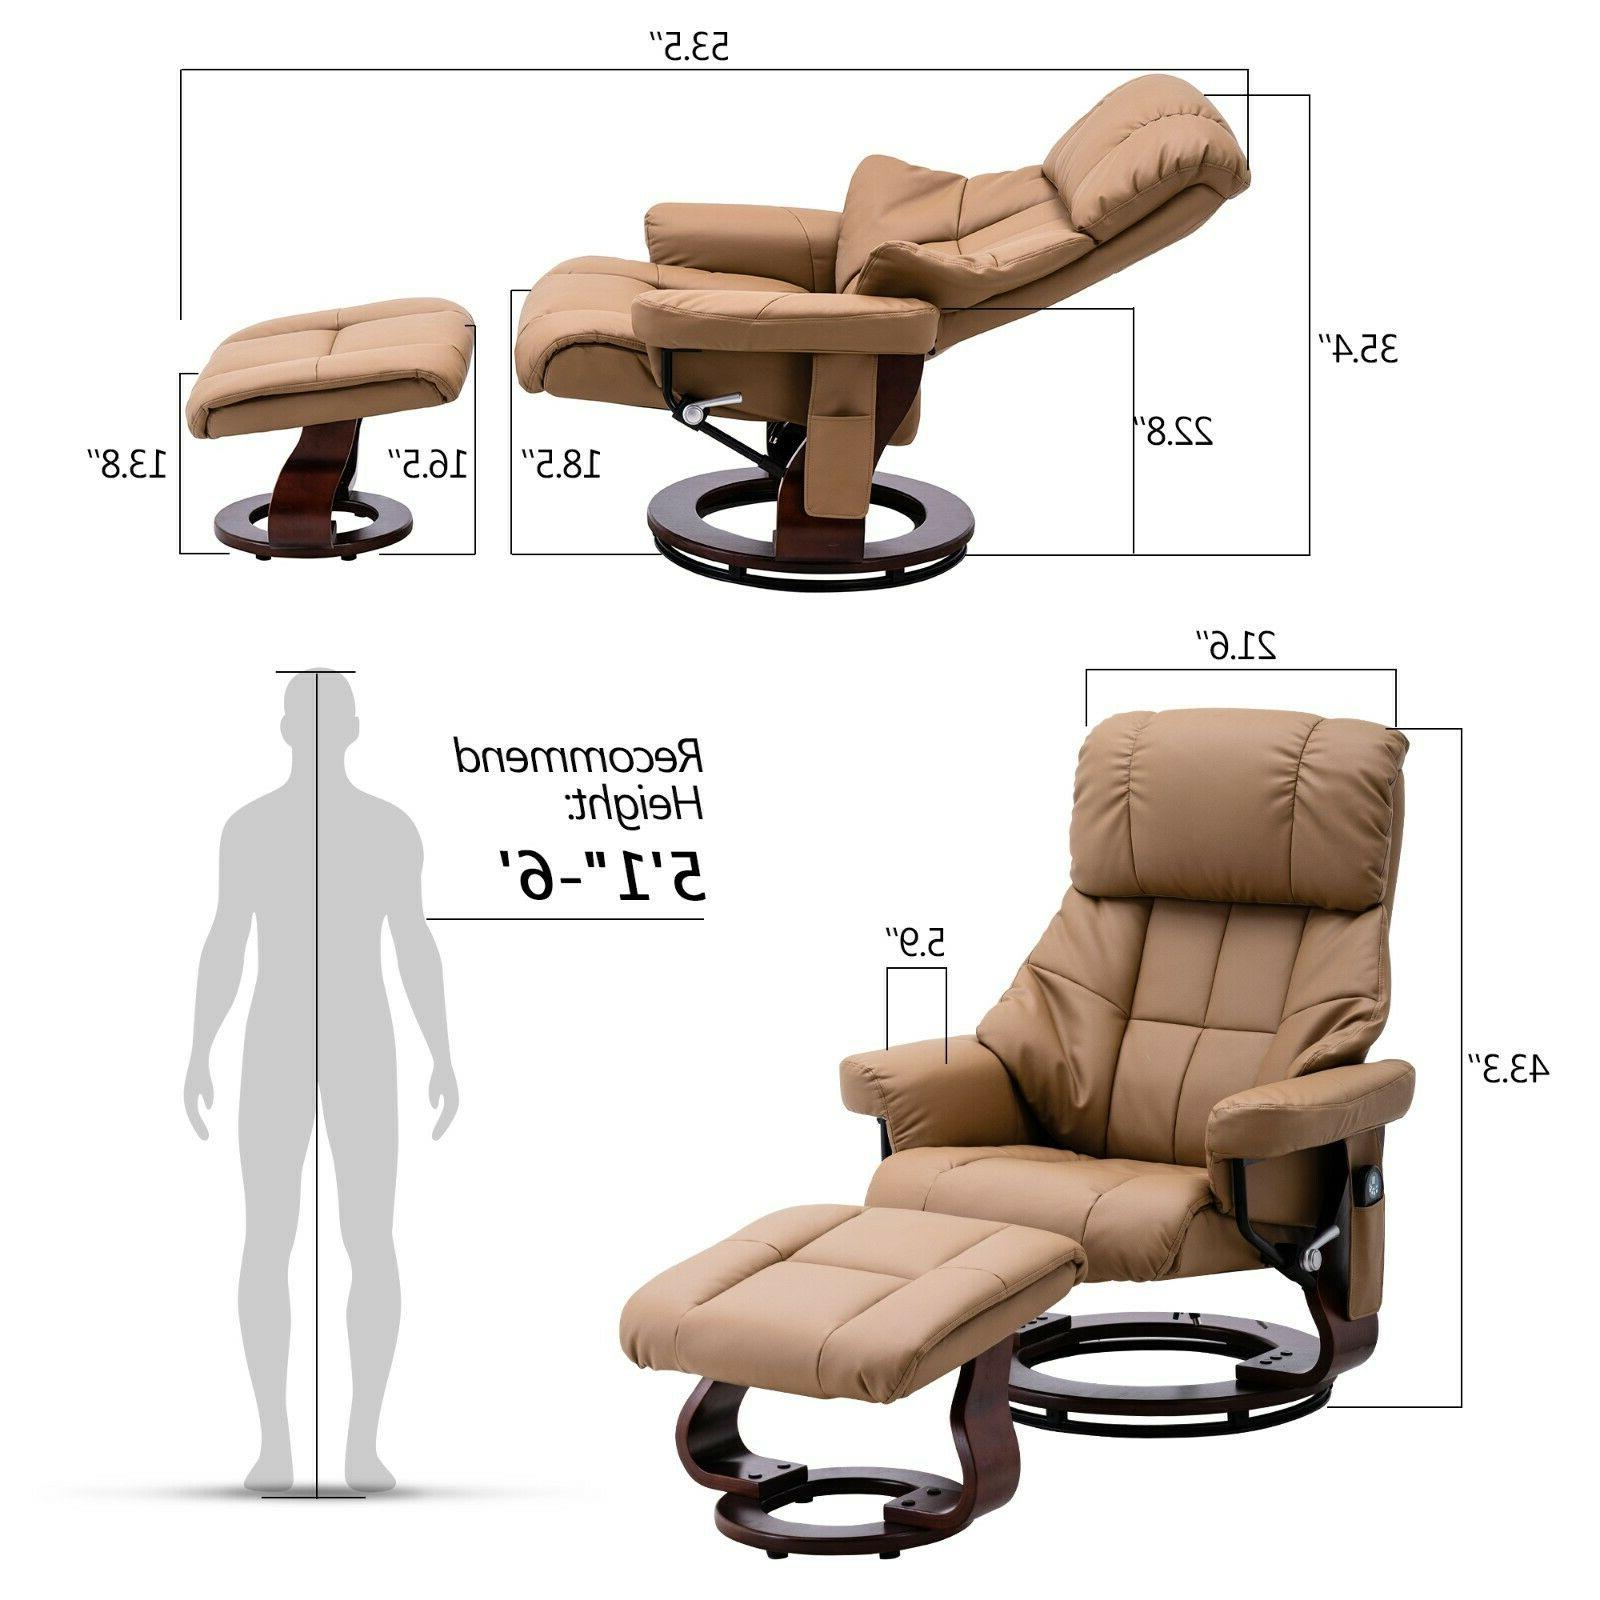 Mcombo Recliner with with Base, Leather 9068